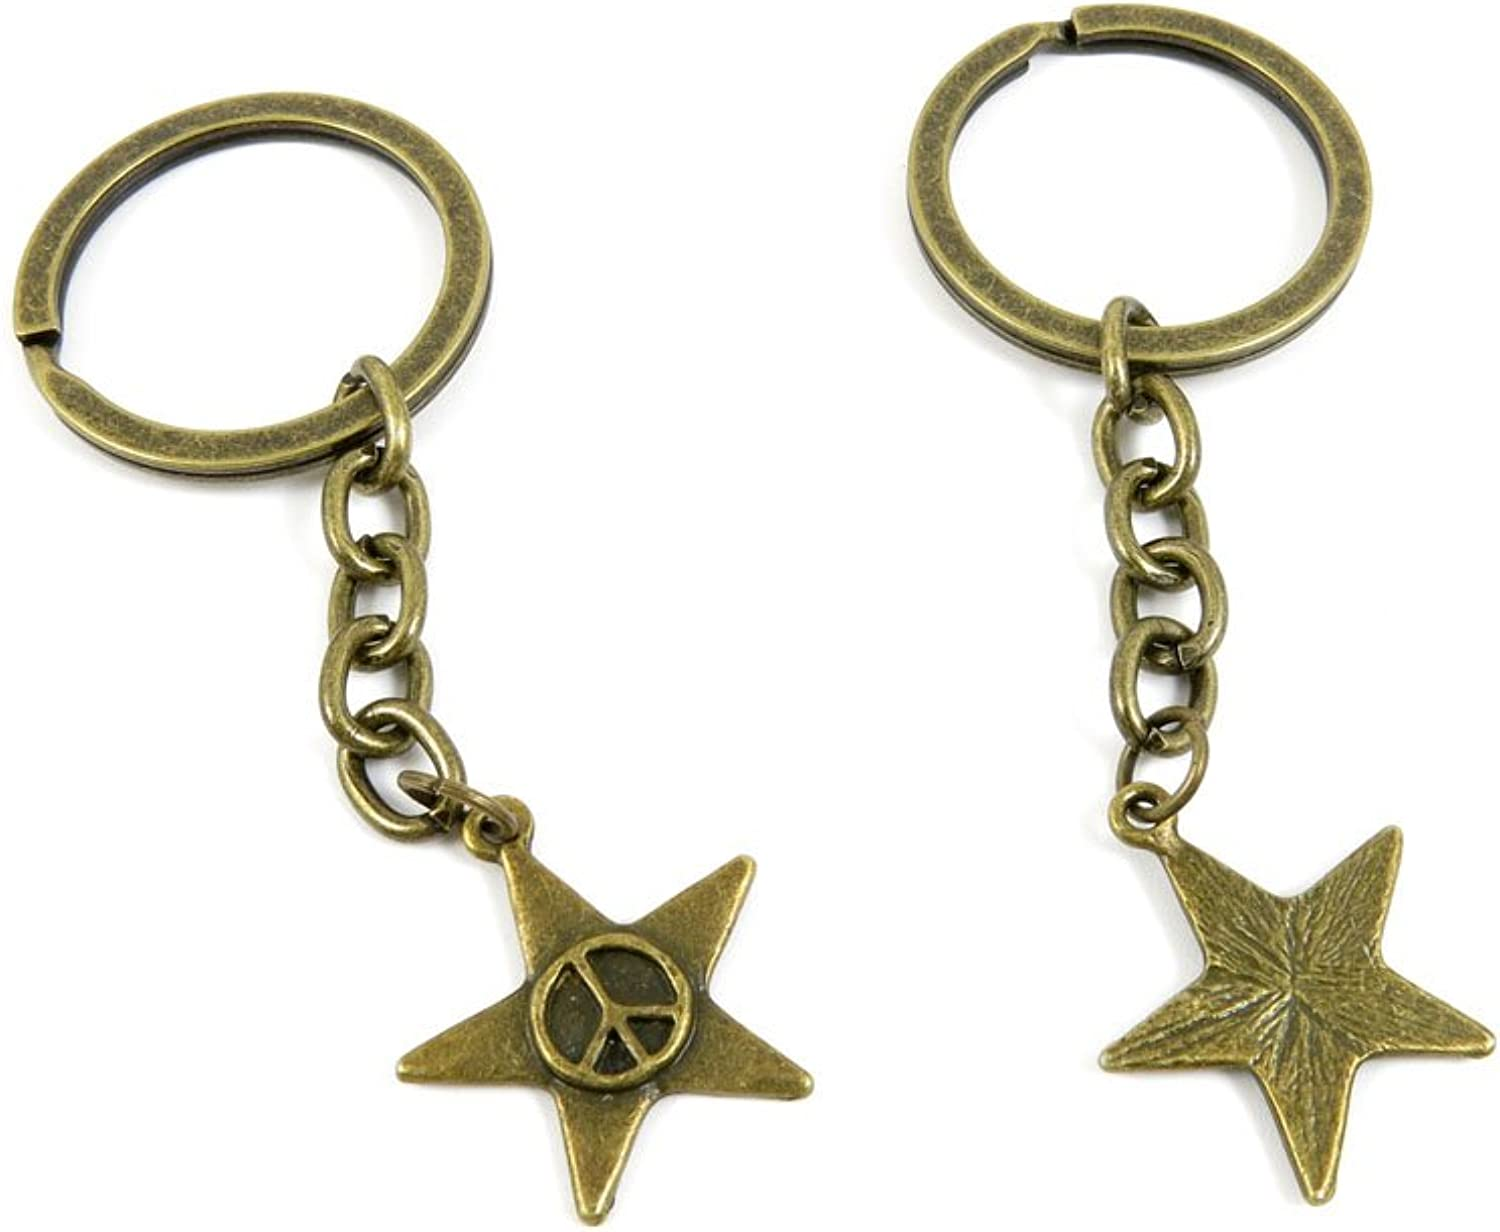 100 PCS Keyrings Keychains Key Ring Chains Tags Jewelry Findings Clasps Buckles Supplies C8WI2 Anti War Signs Stars